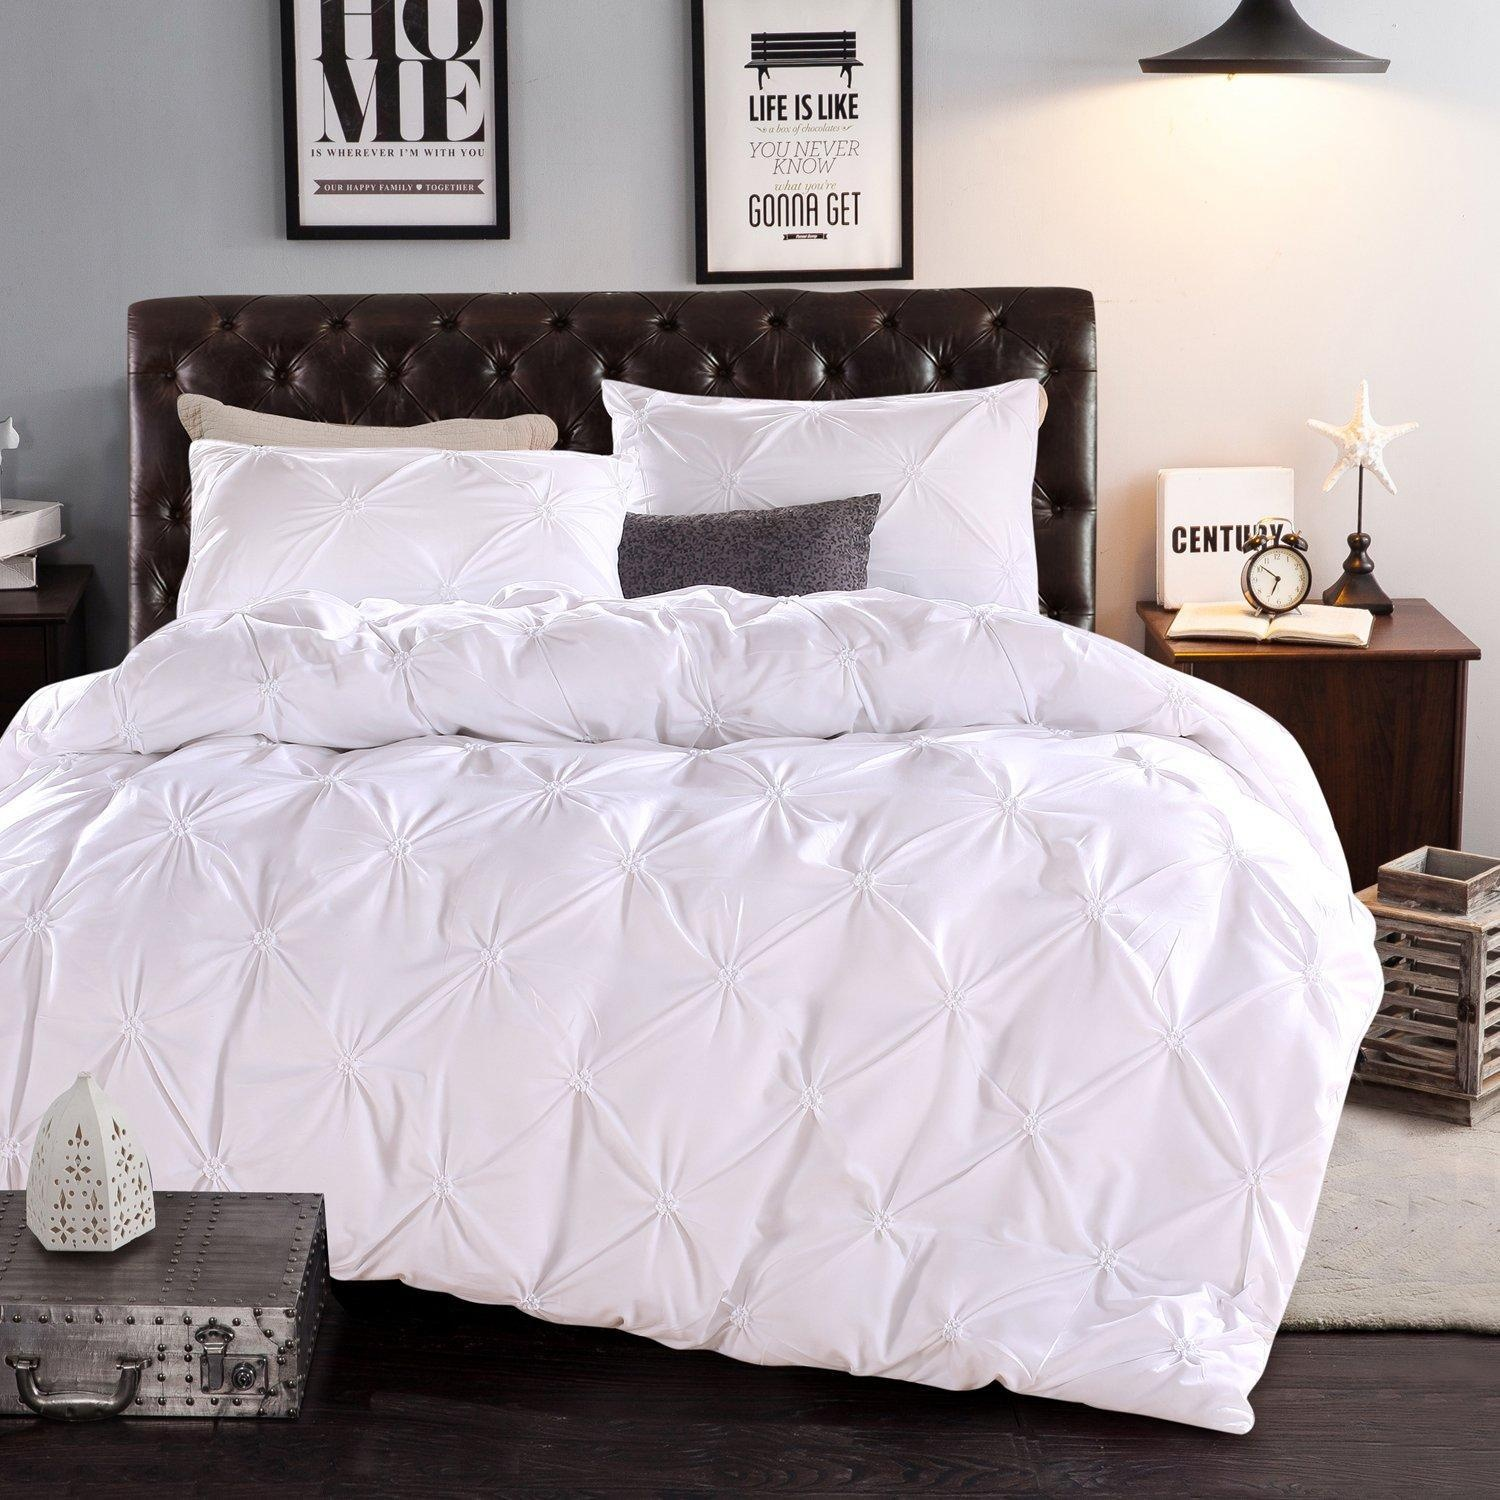 Sears Comforter Sets | Grey Queen Comforter | Full Size Comforter Set